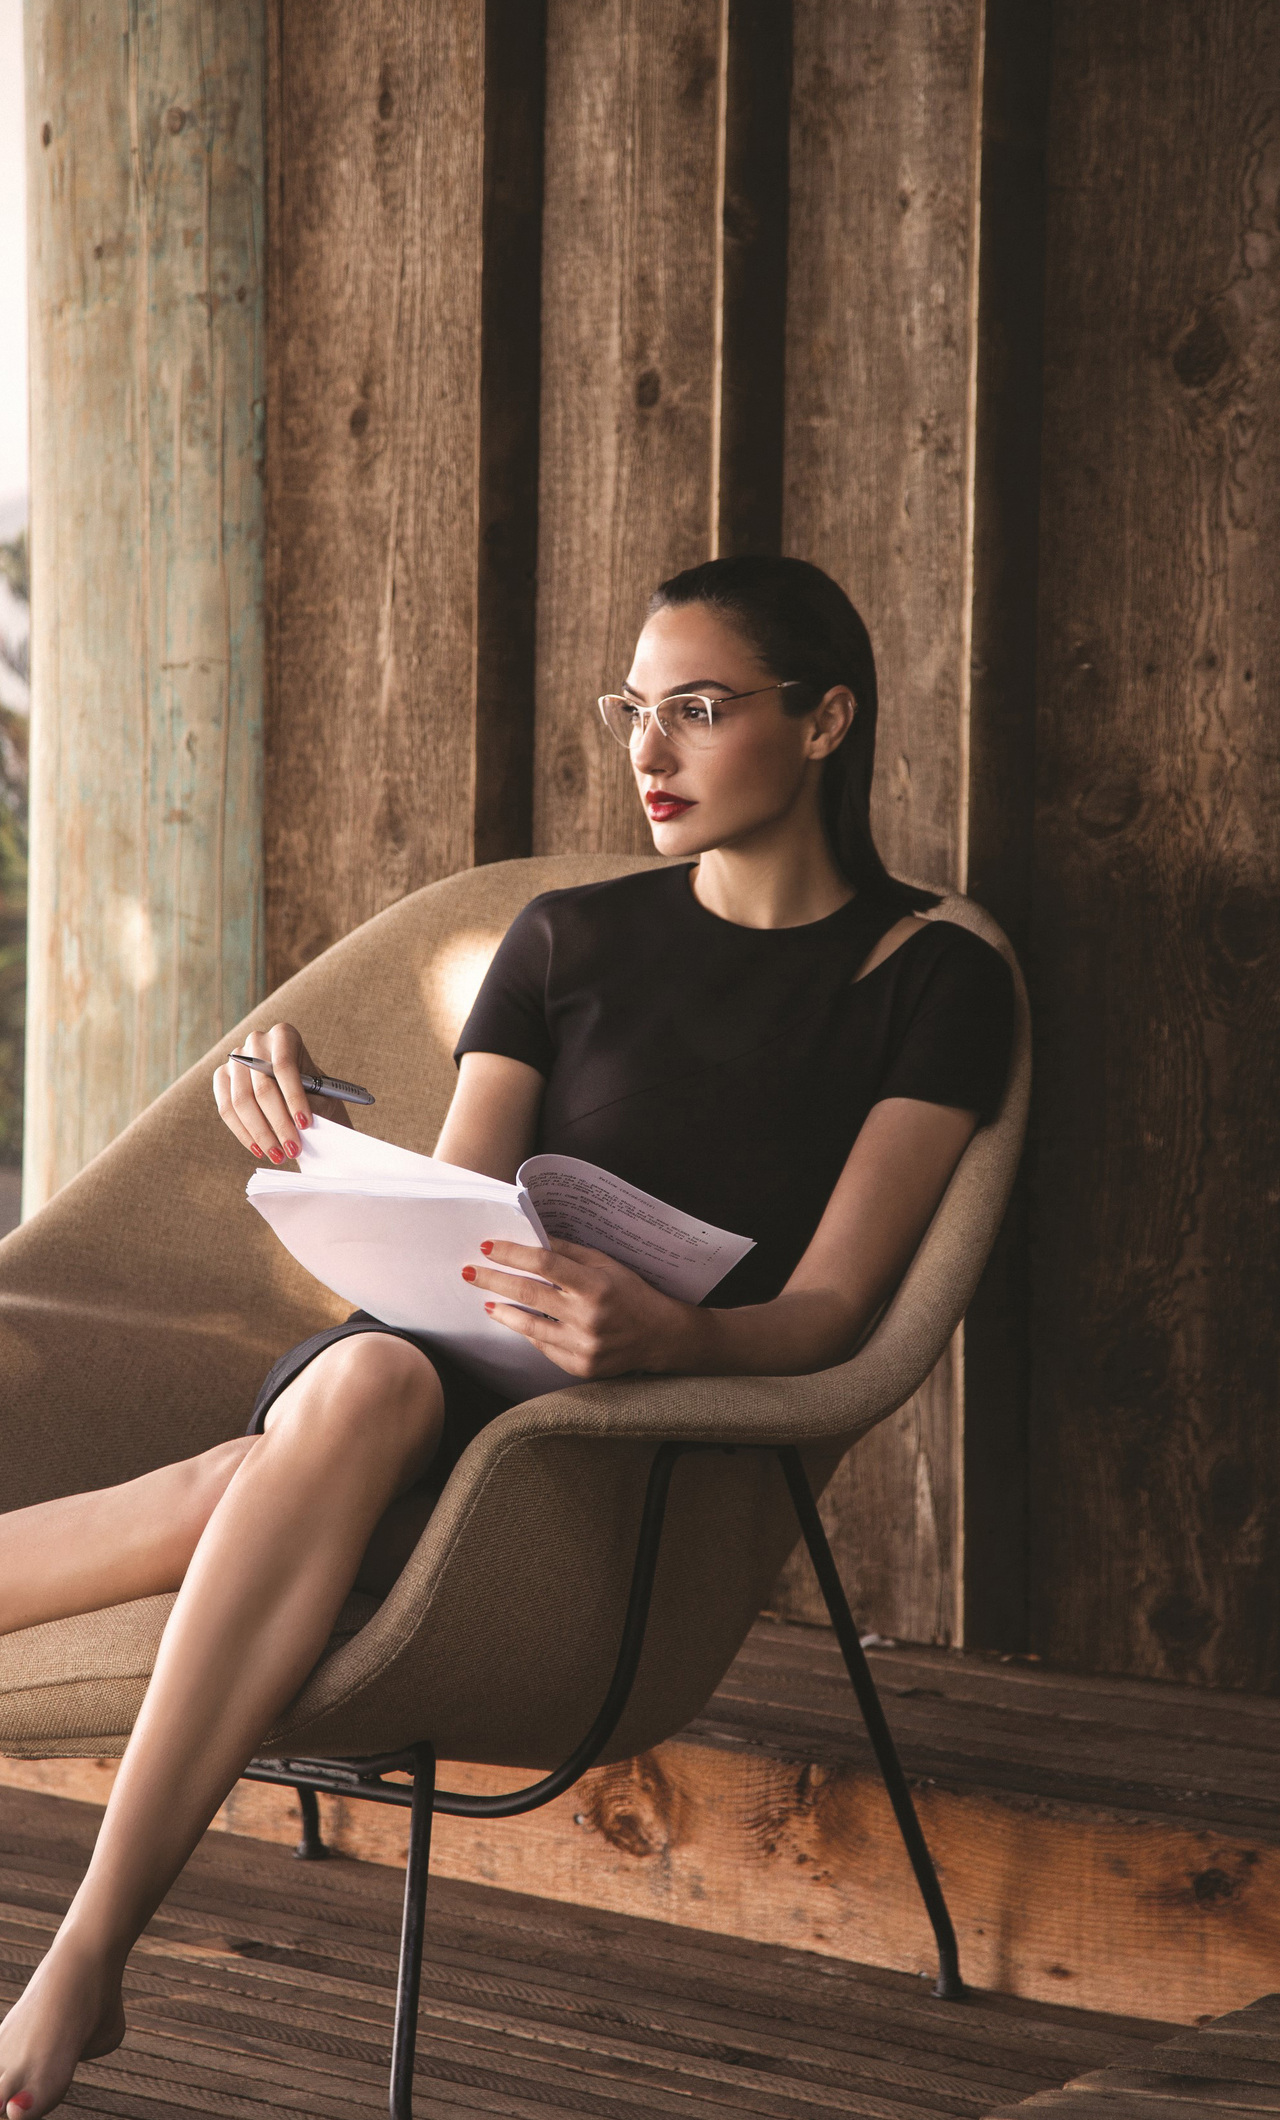 gal-gadot-collection-coolray-photoshoot-7w.jpg